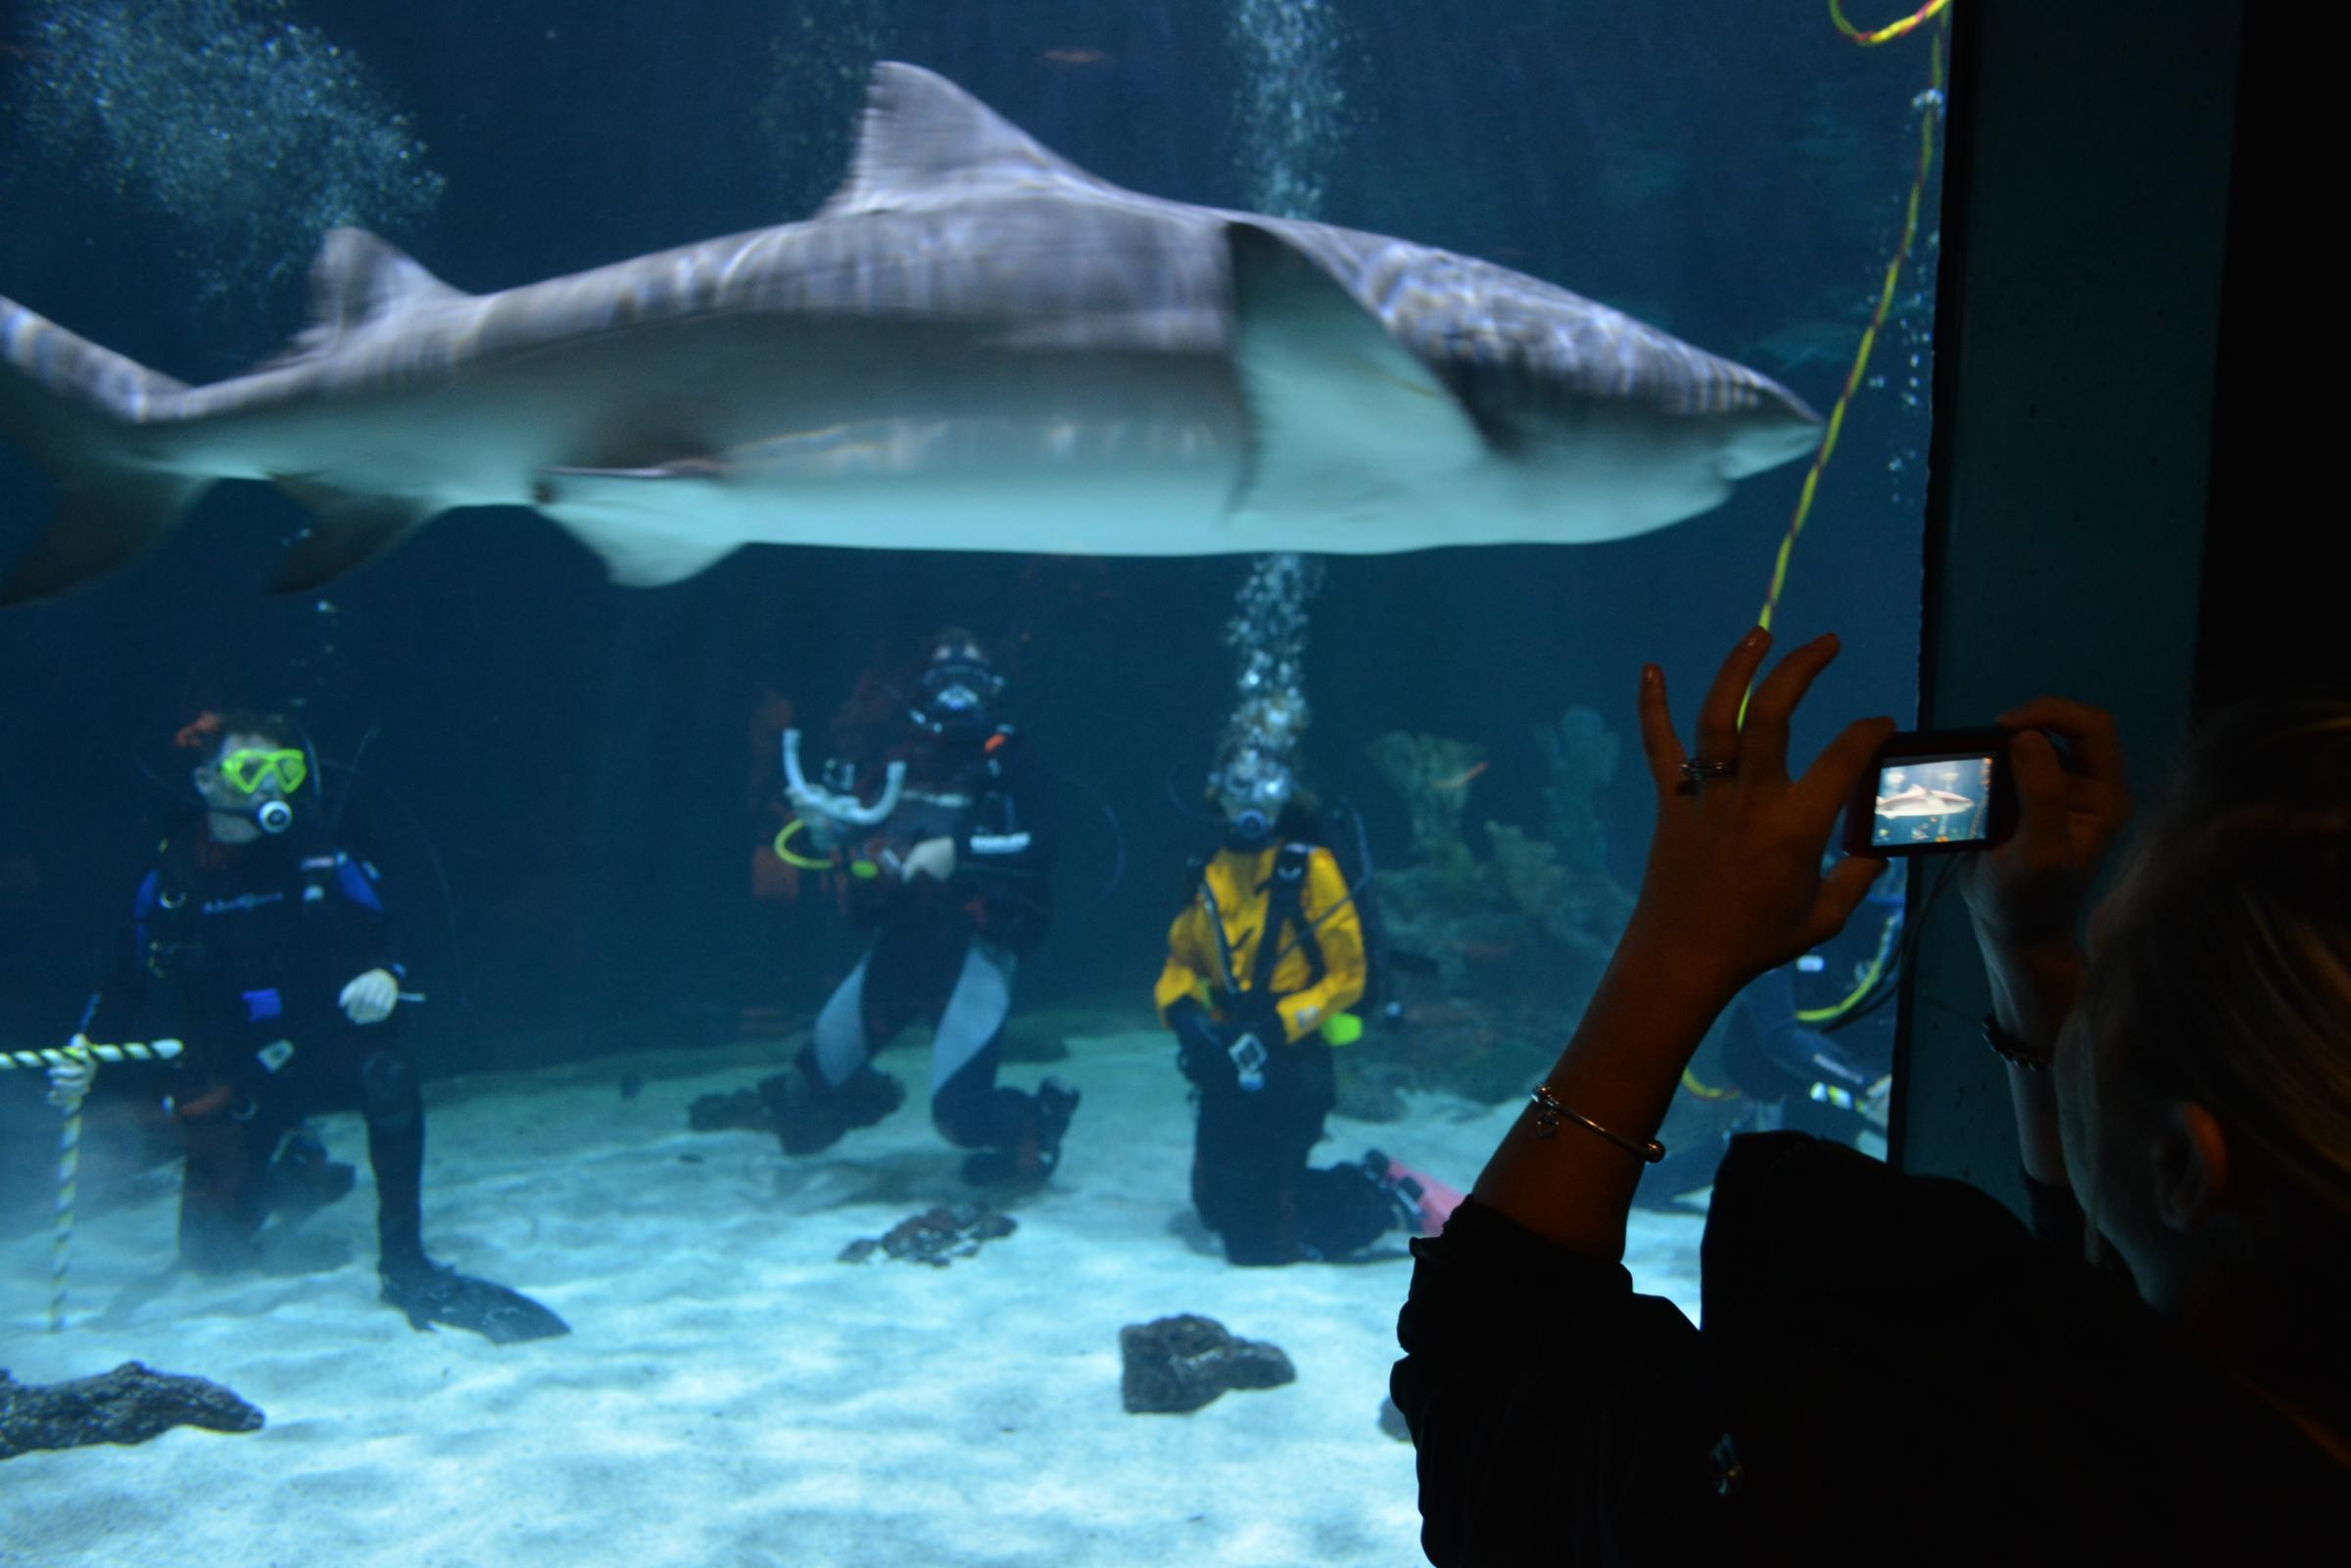 Aquarium Sharks : Aquarium In Tacoma To Let Visitors Dive In Shark Tank Northwest ...